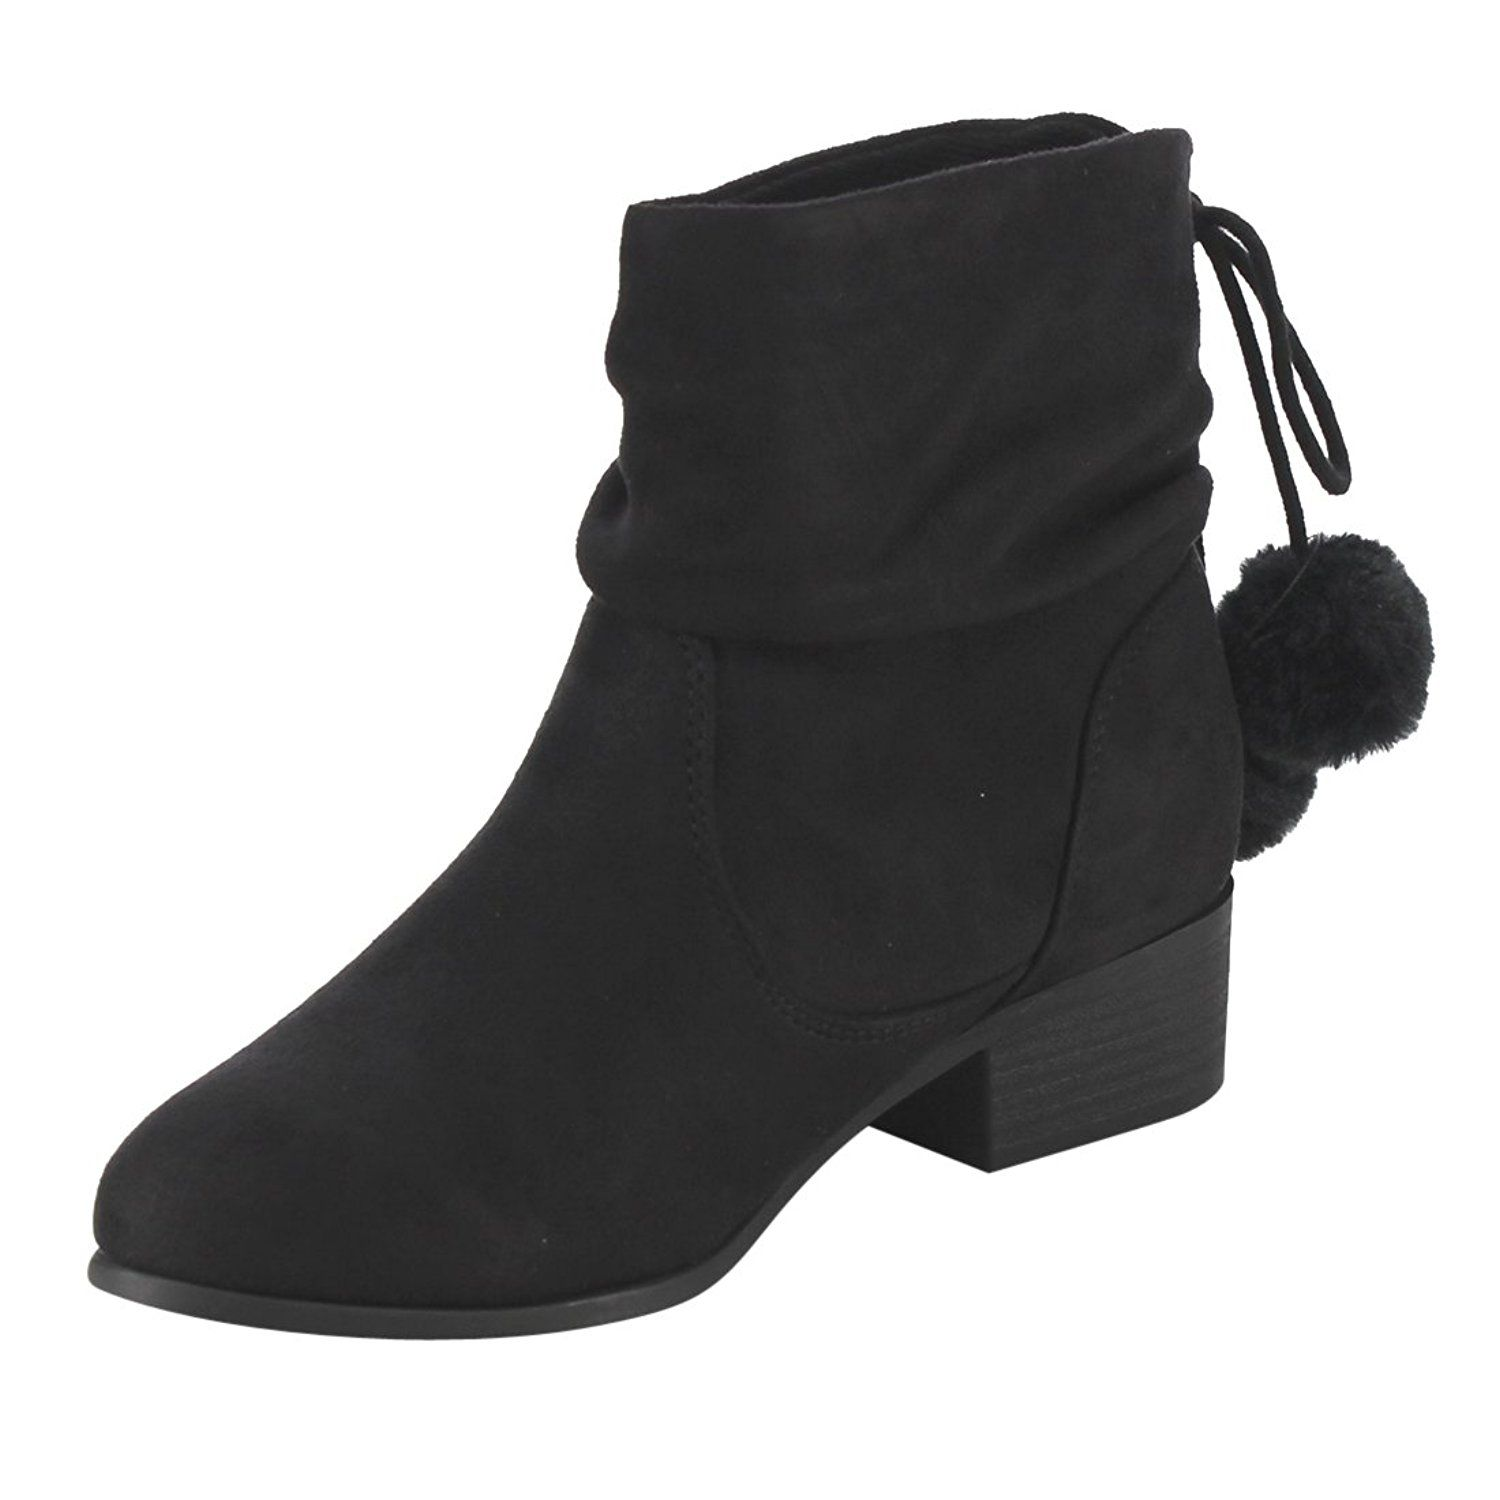 FF26 Women's Slouchy Pom Pom Back Lace Up Block Heel Ankle Booties